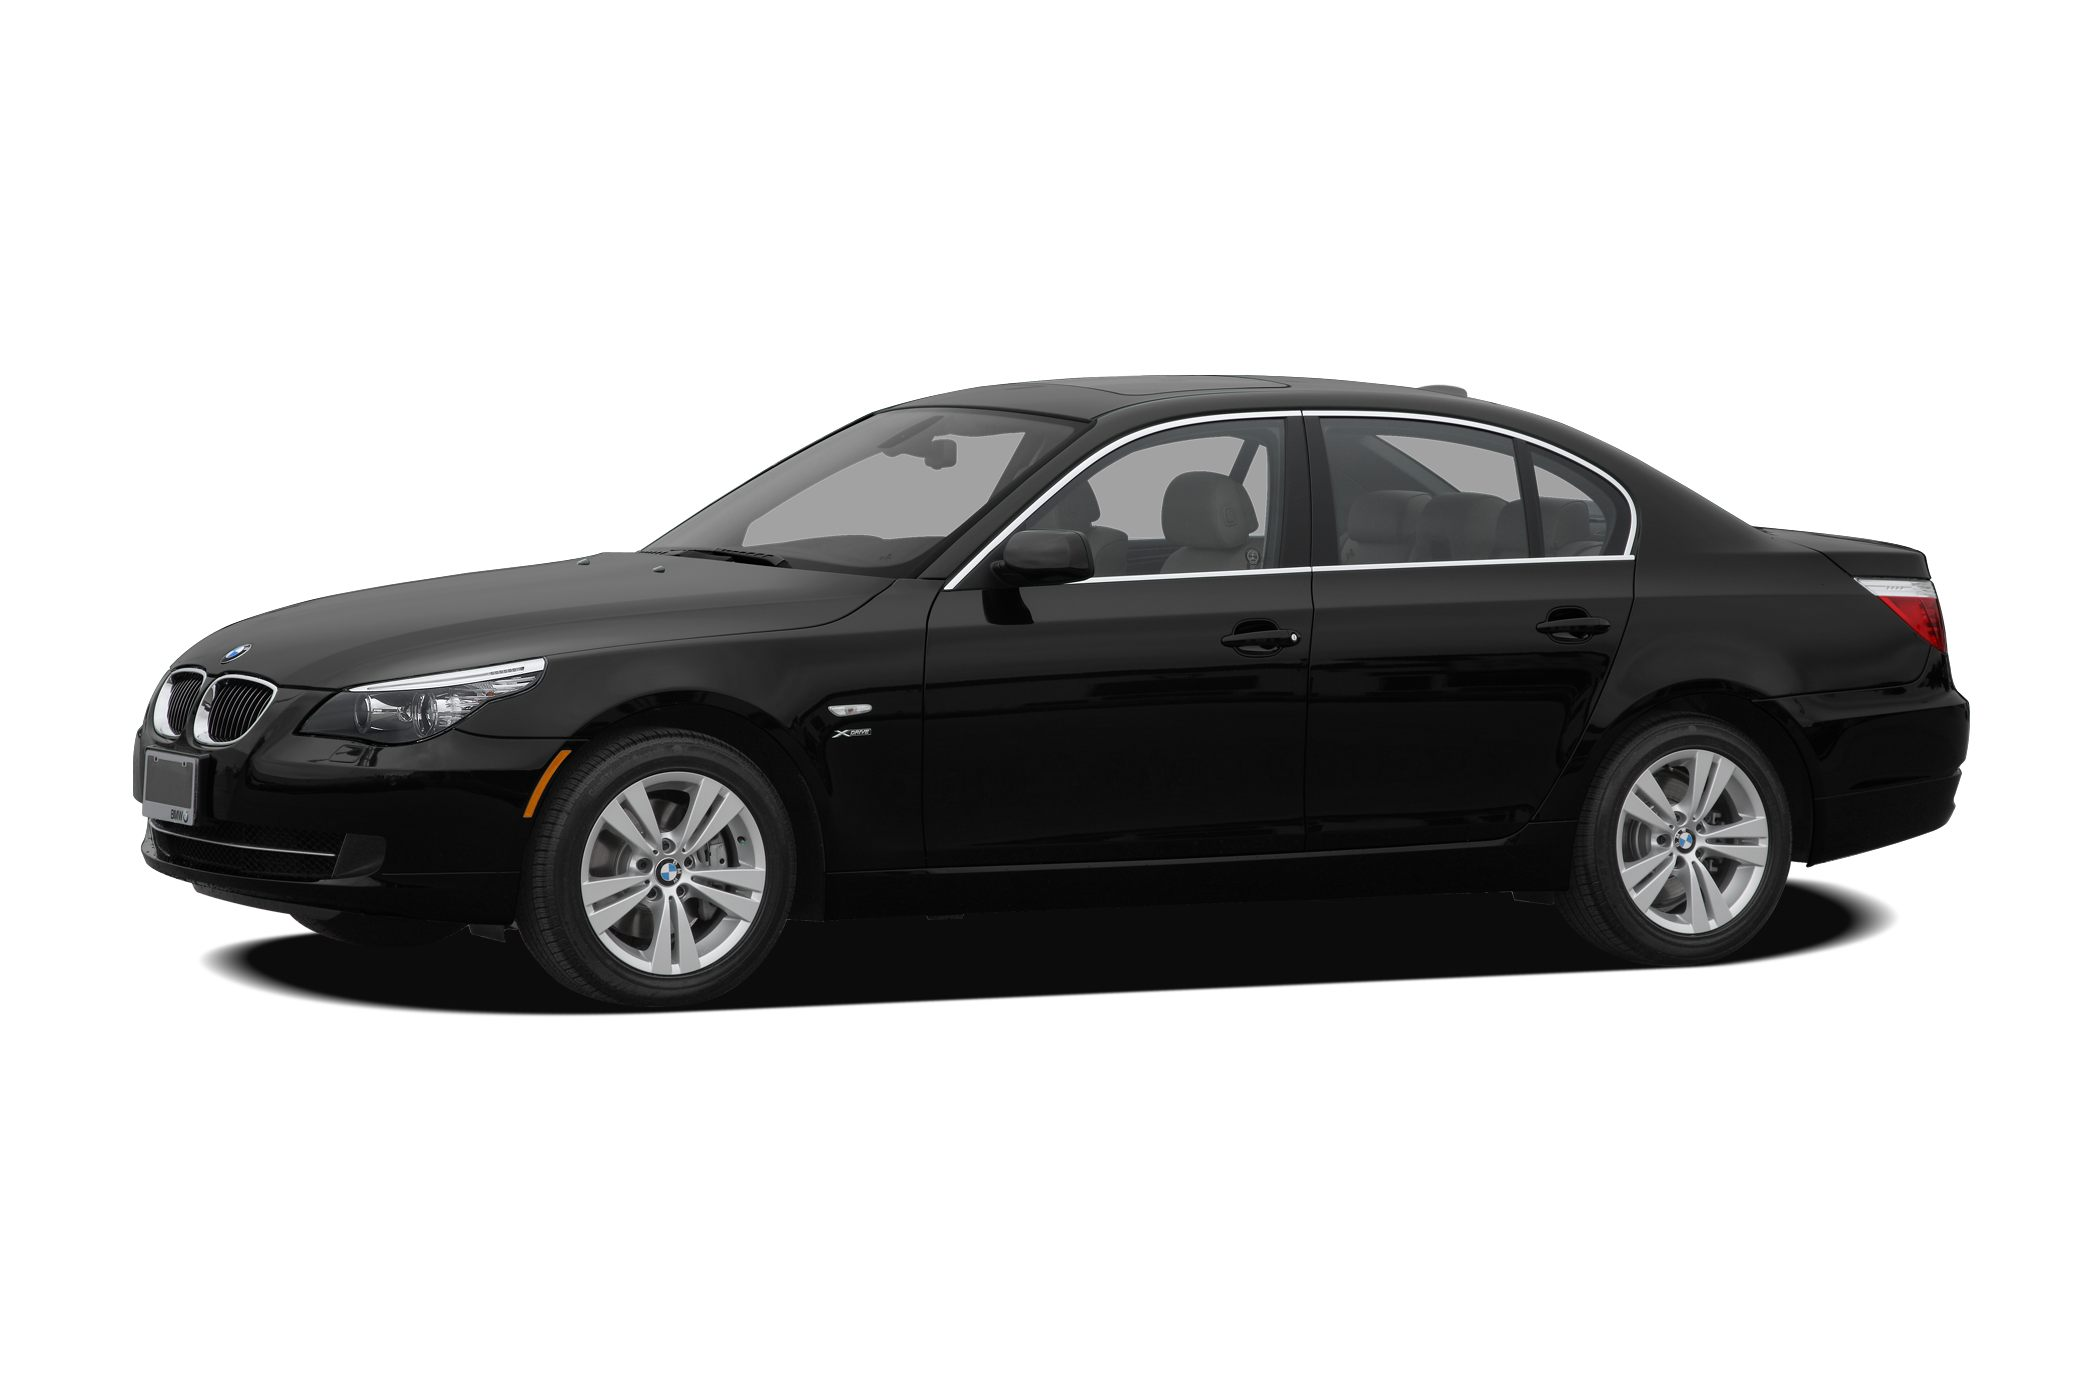 2010 BMW 528 I XDrive Sedan for sale in Conroe for $0 with 89,253 miles